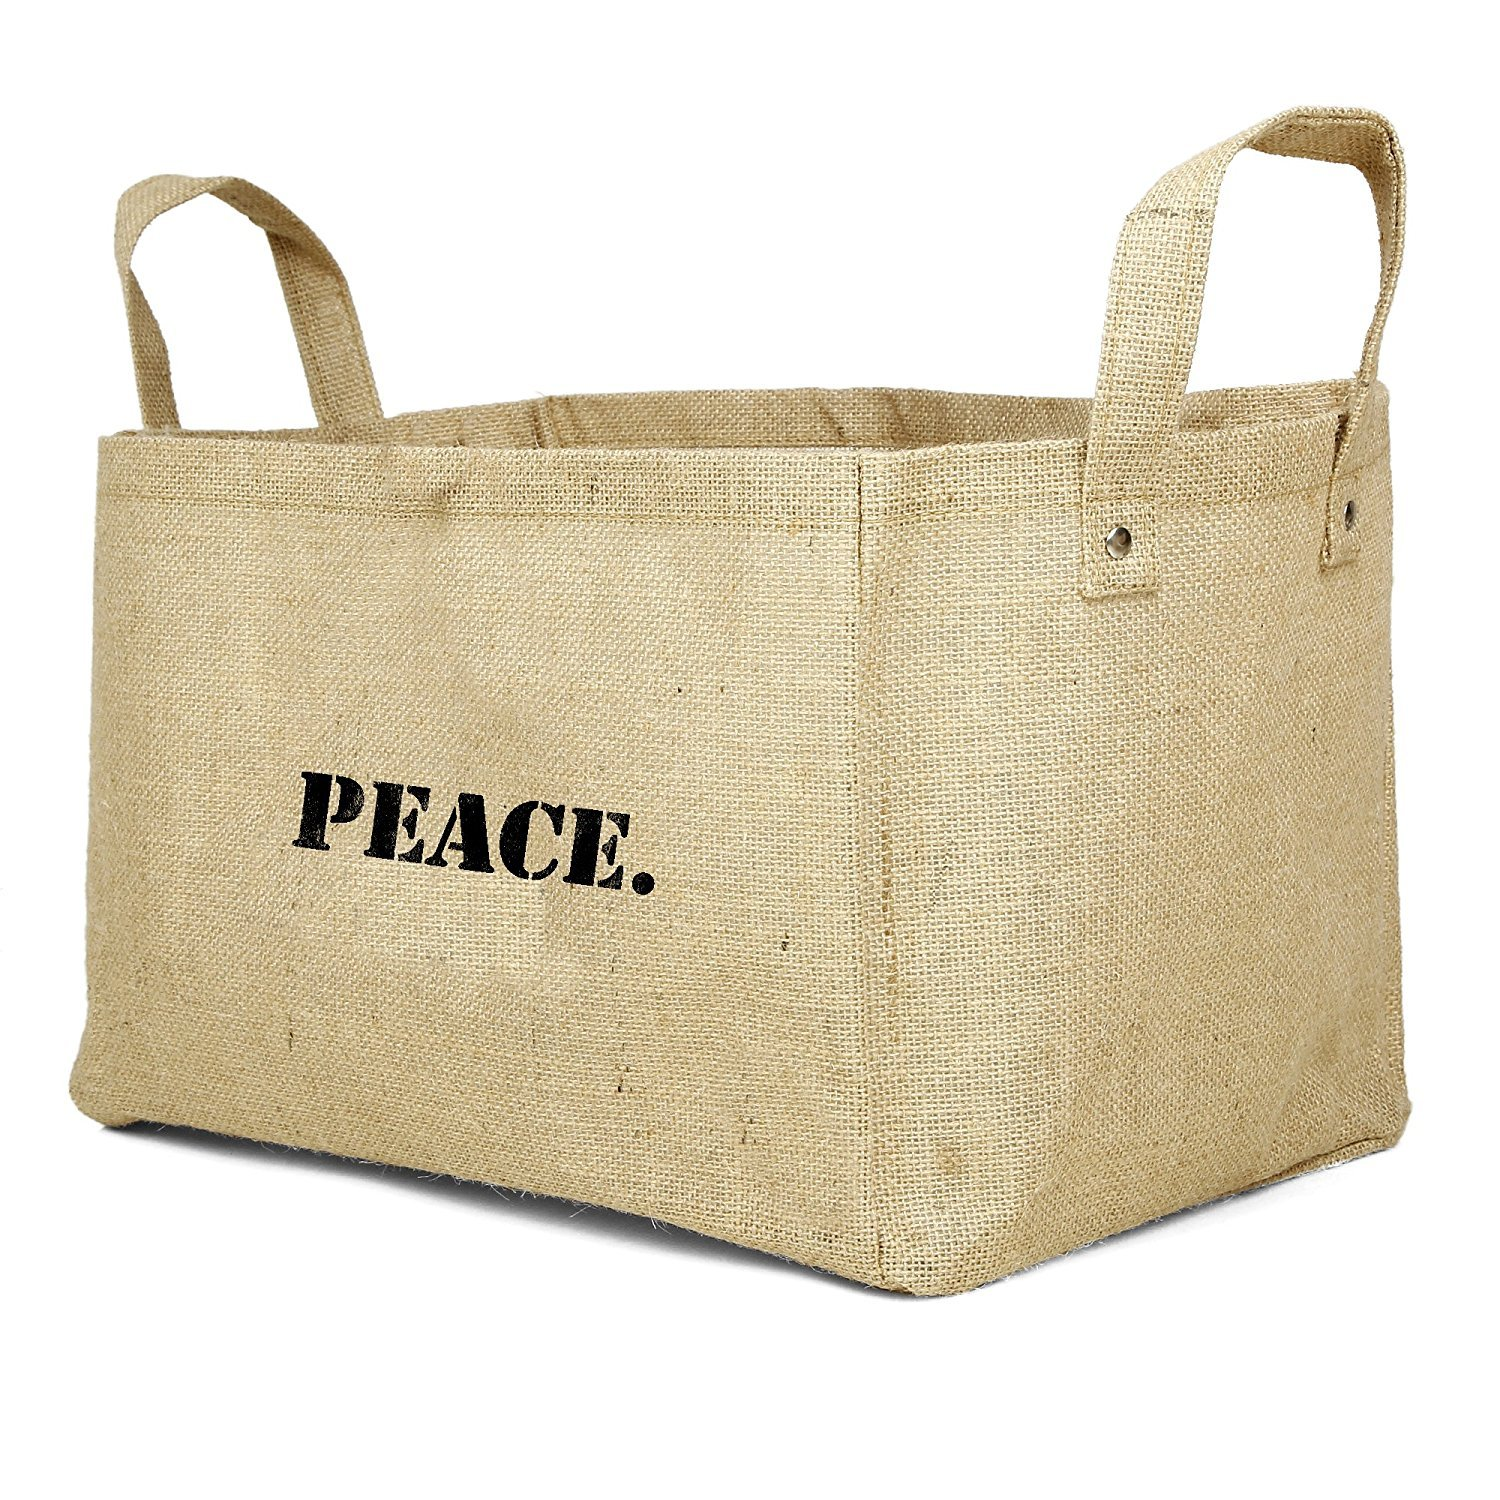 Large collapsible jute peace basket with handles for storage - a lovely example of an everyday object that works hard and functions while elevating moods with a positive message.